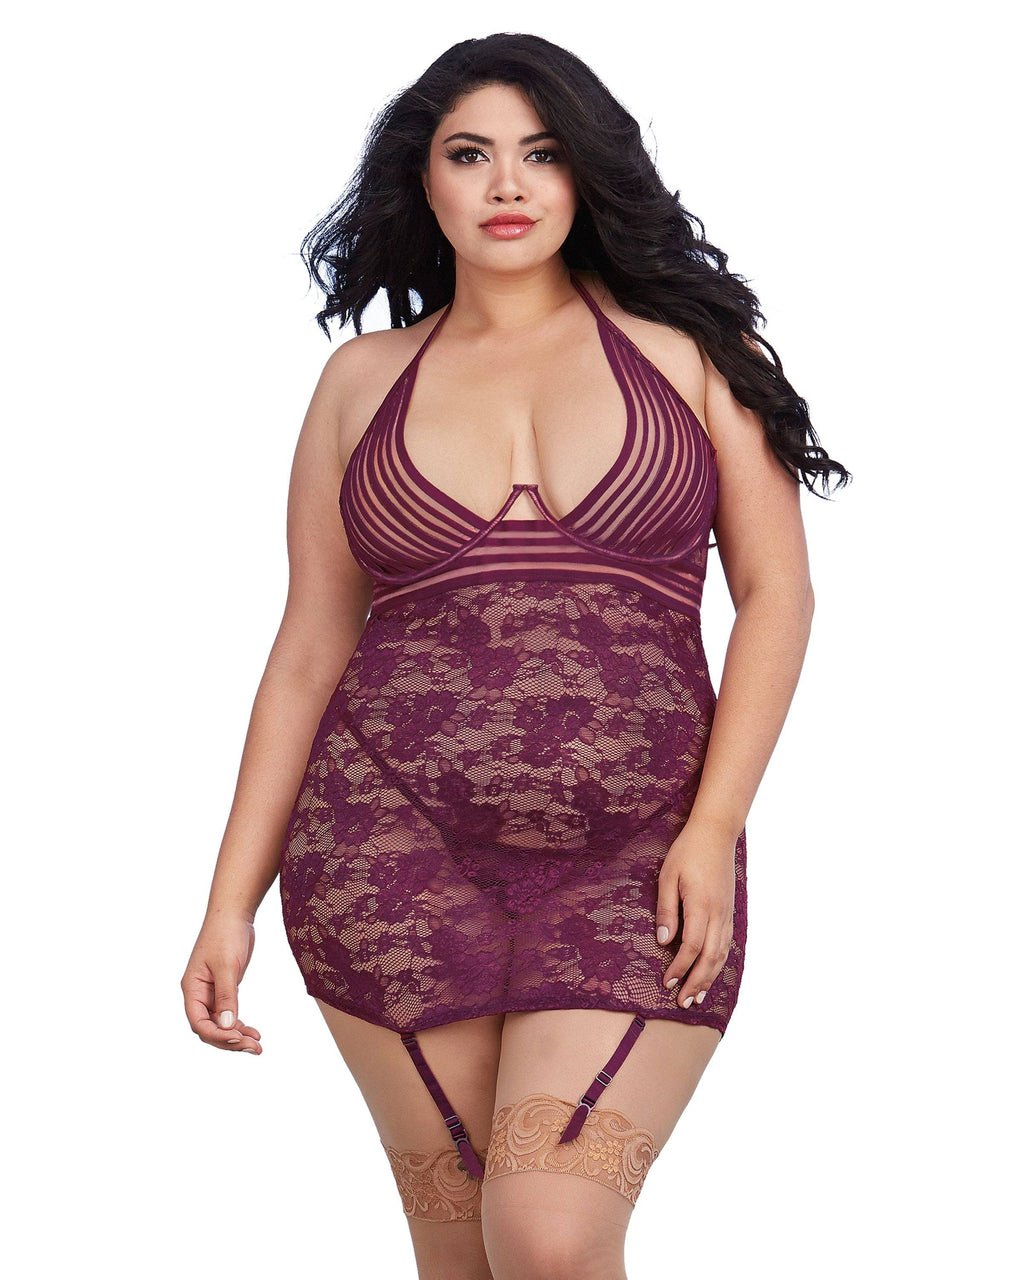 Plus Size Garter Slip with Sheer Stripped Elastic Details Garter Slip Dreamgirl International